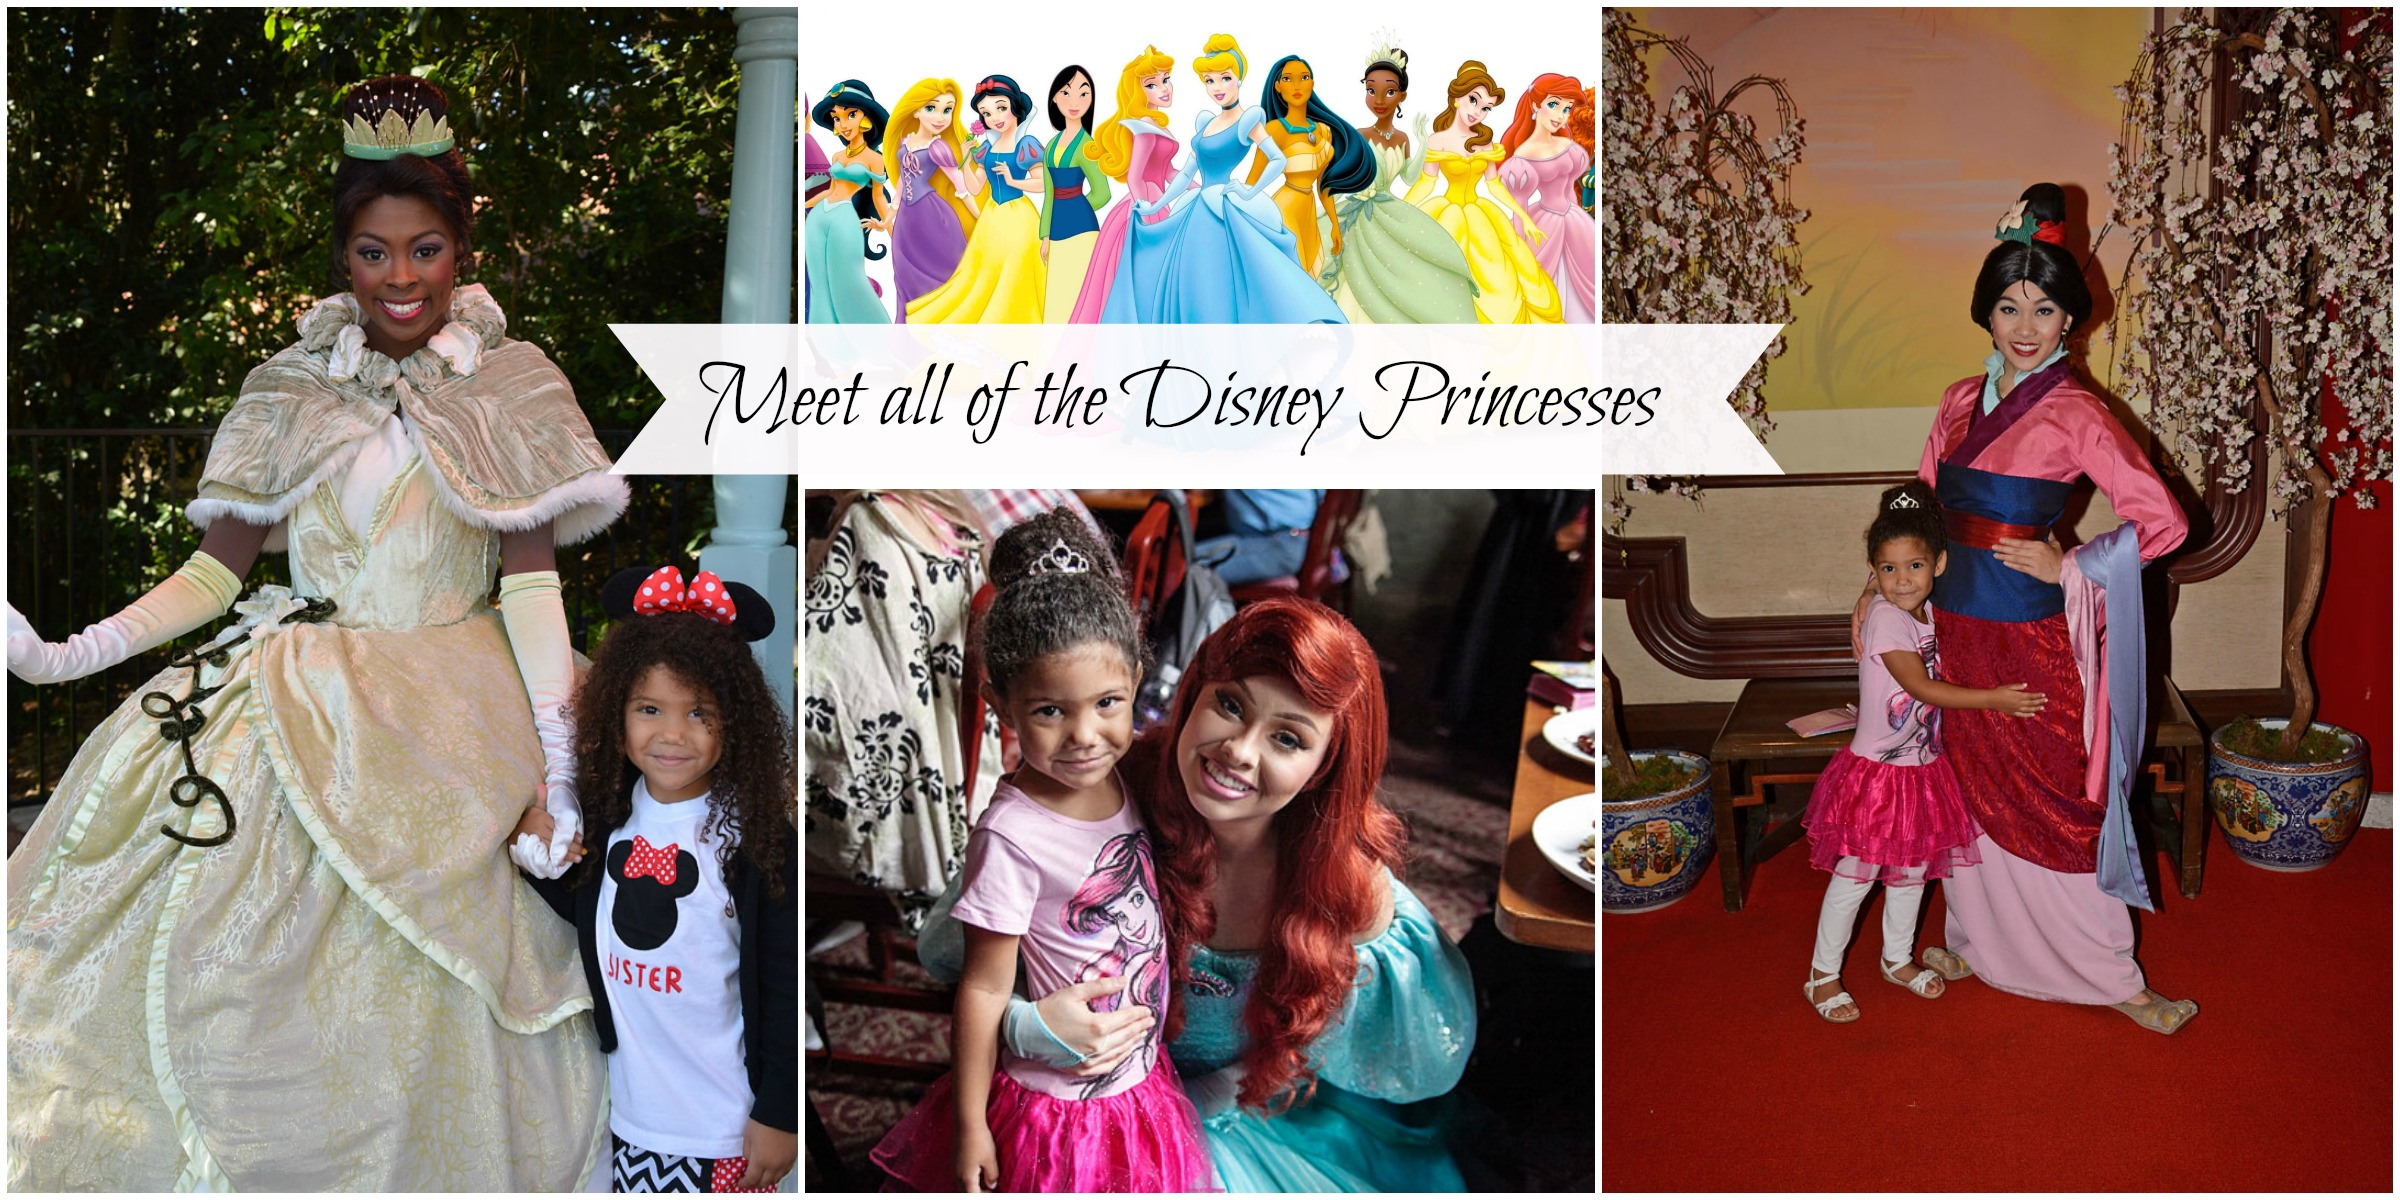 Tips For Meeting All Of The Disney Princesses At Disney World